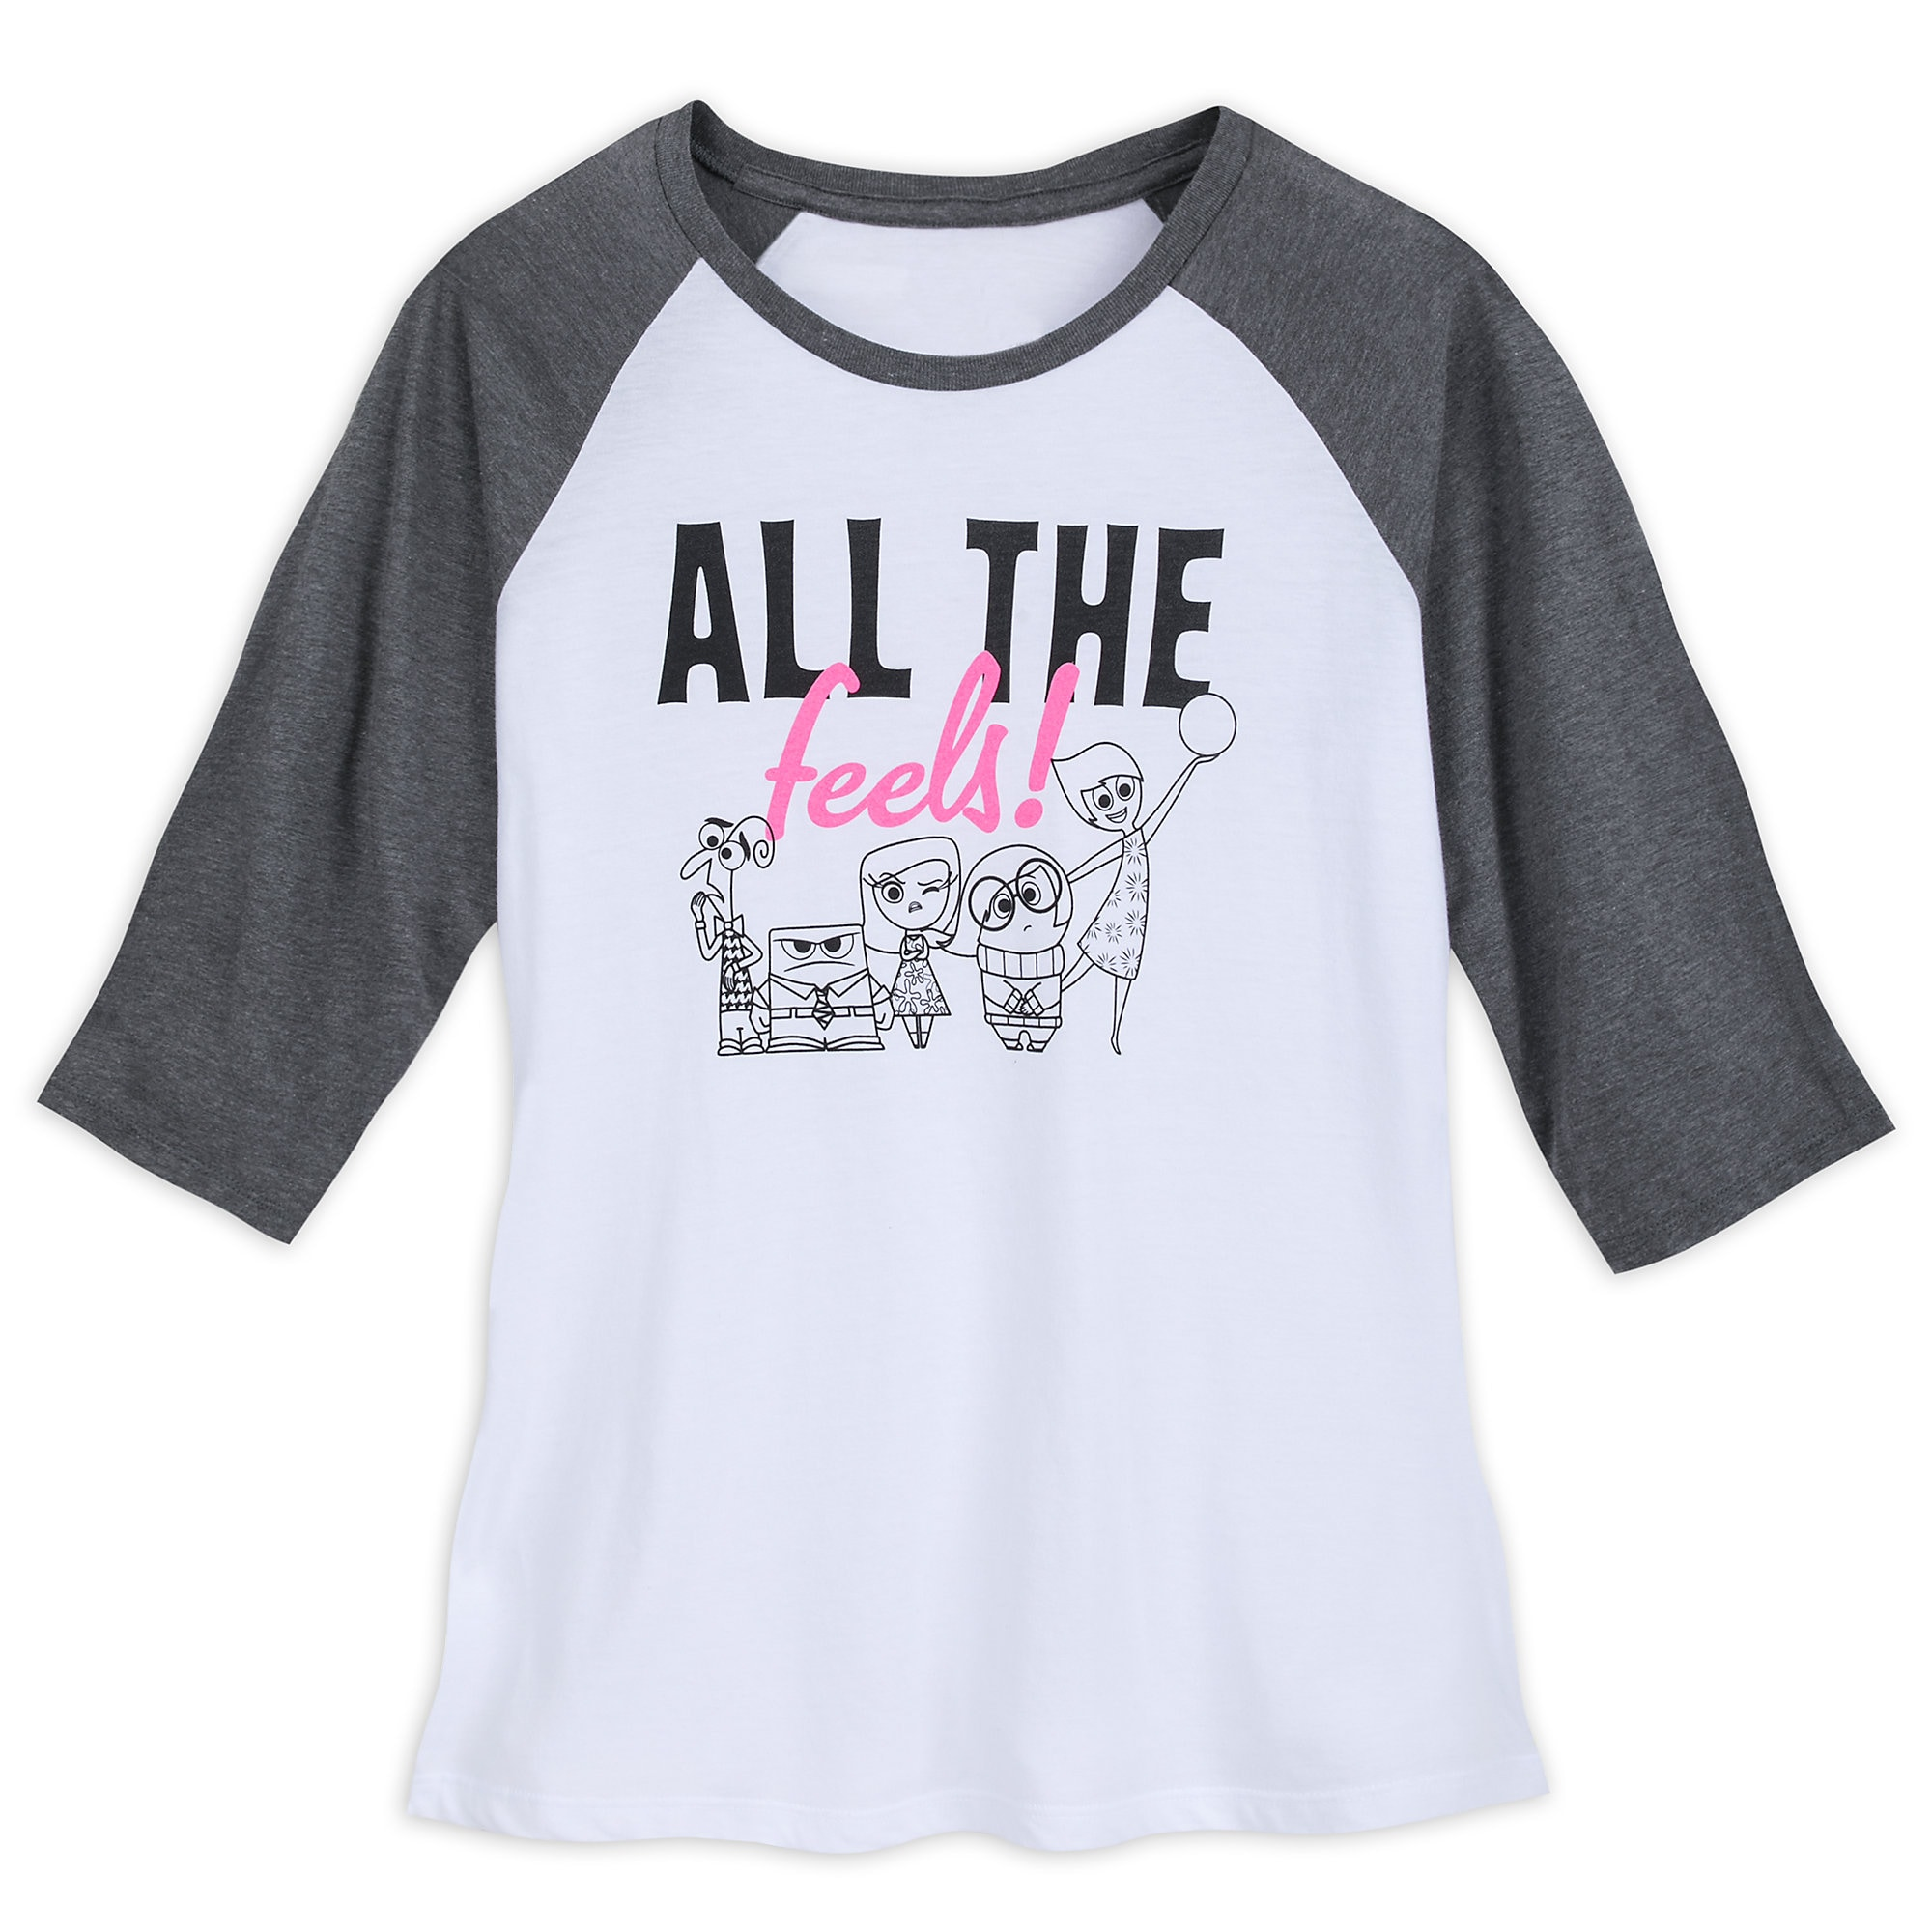 Inside Out Raglan T-Shirt for Women